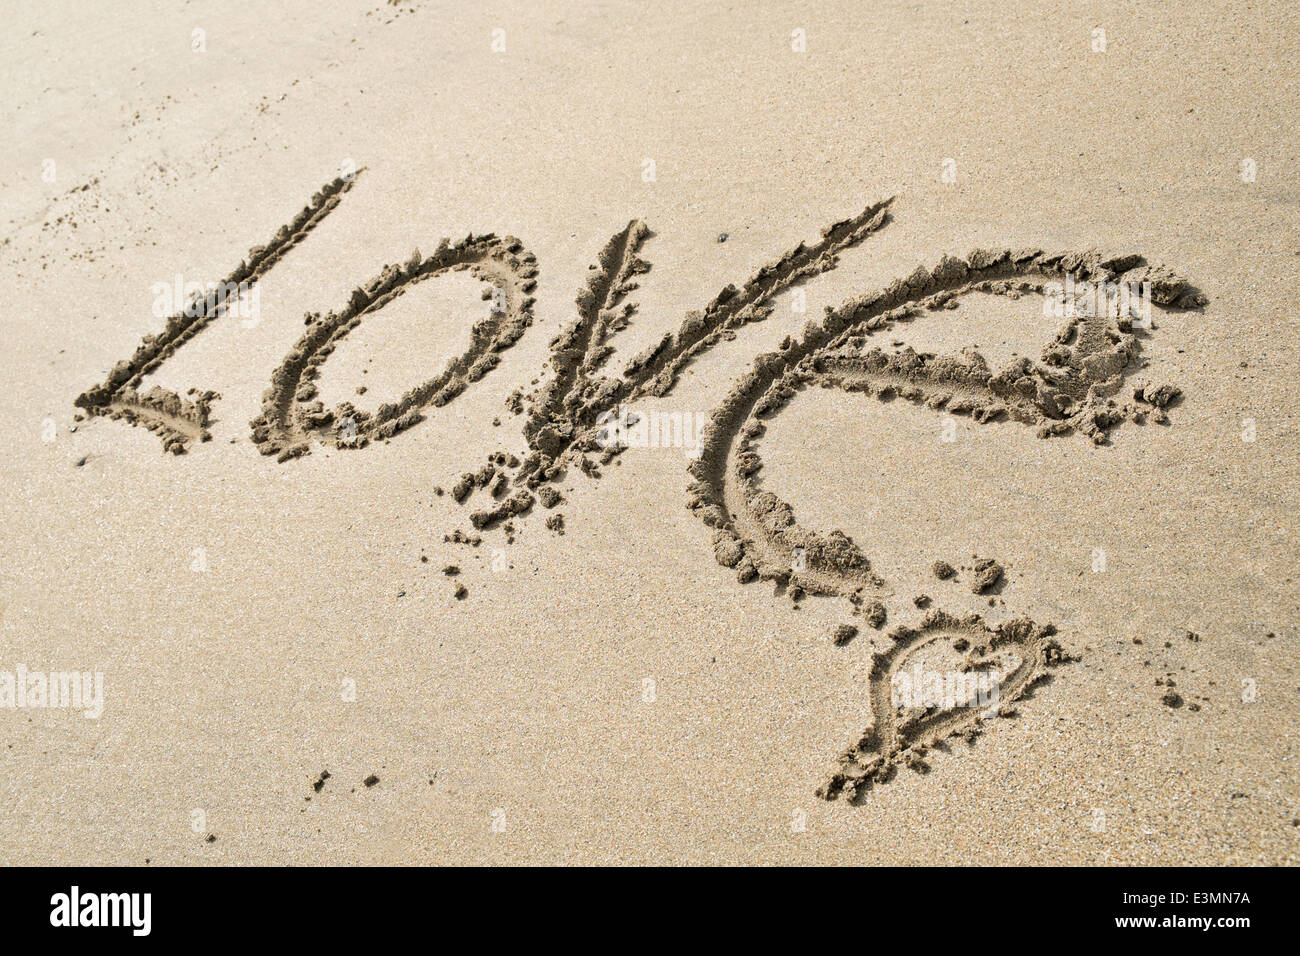 The word Love written in the sand on a sunny, sandy beach - Stock Image